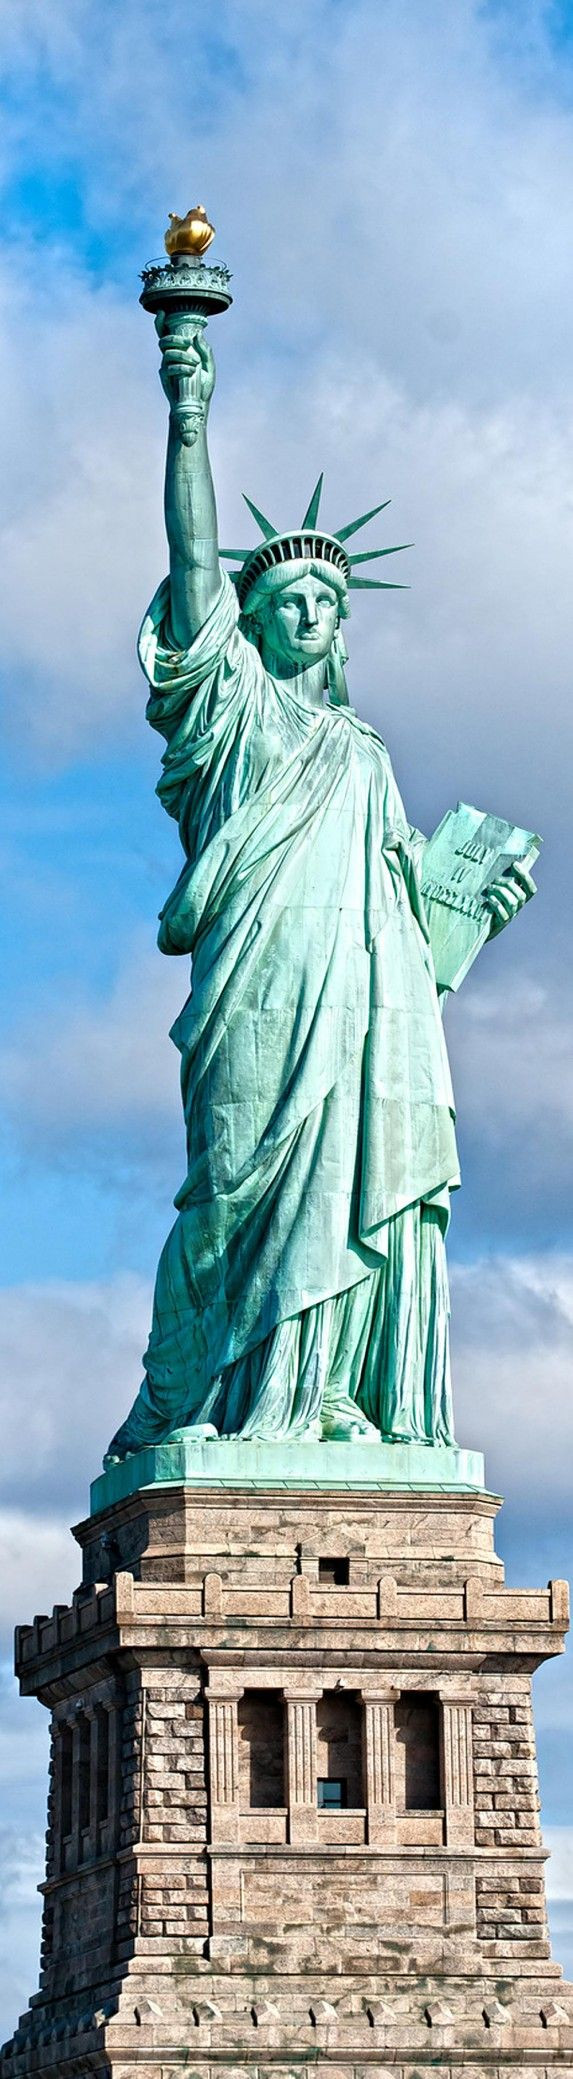 Statue of Liberty, NYC,NEW YORK,USA.  2017 - our leader says, we don't want you unless you're European, white and have money...ummm